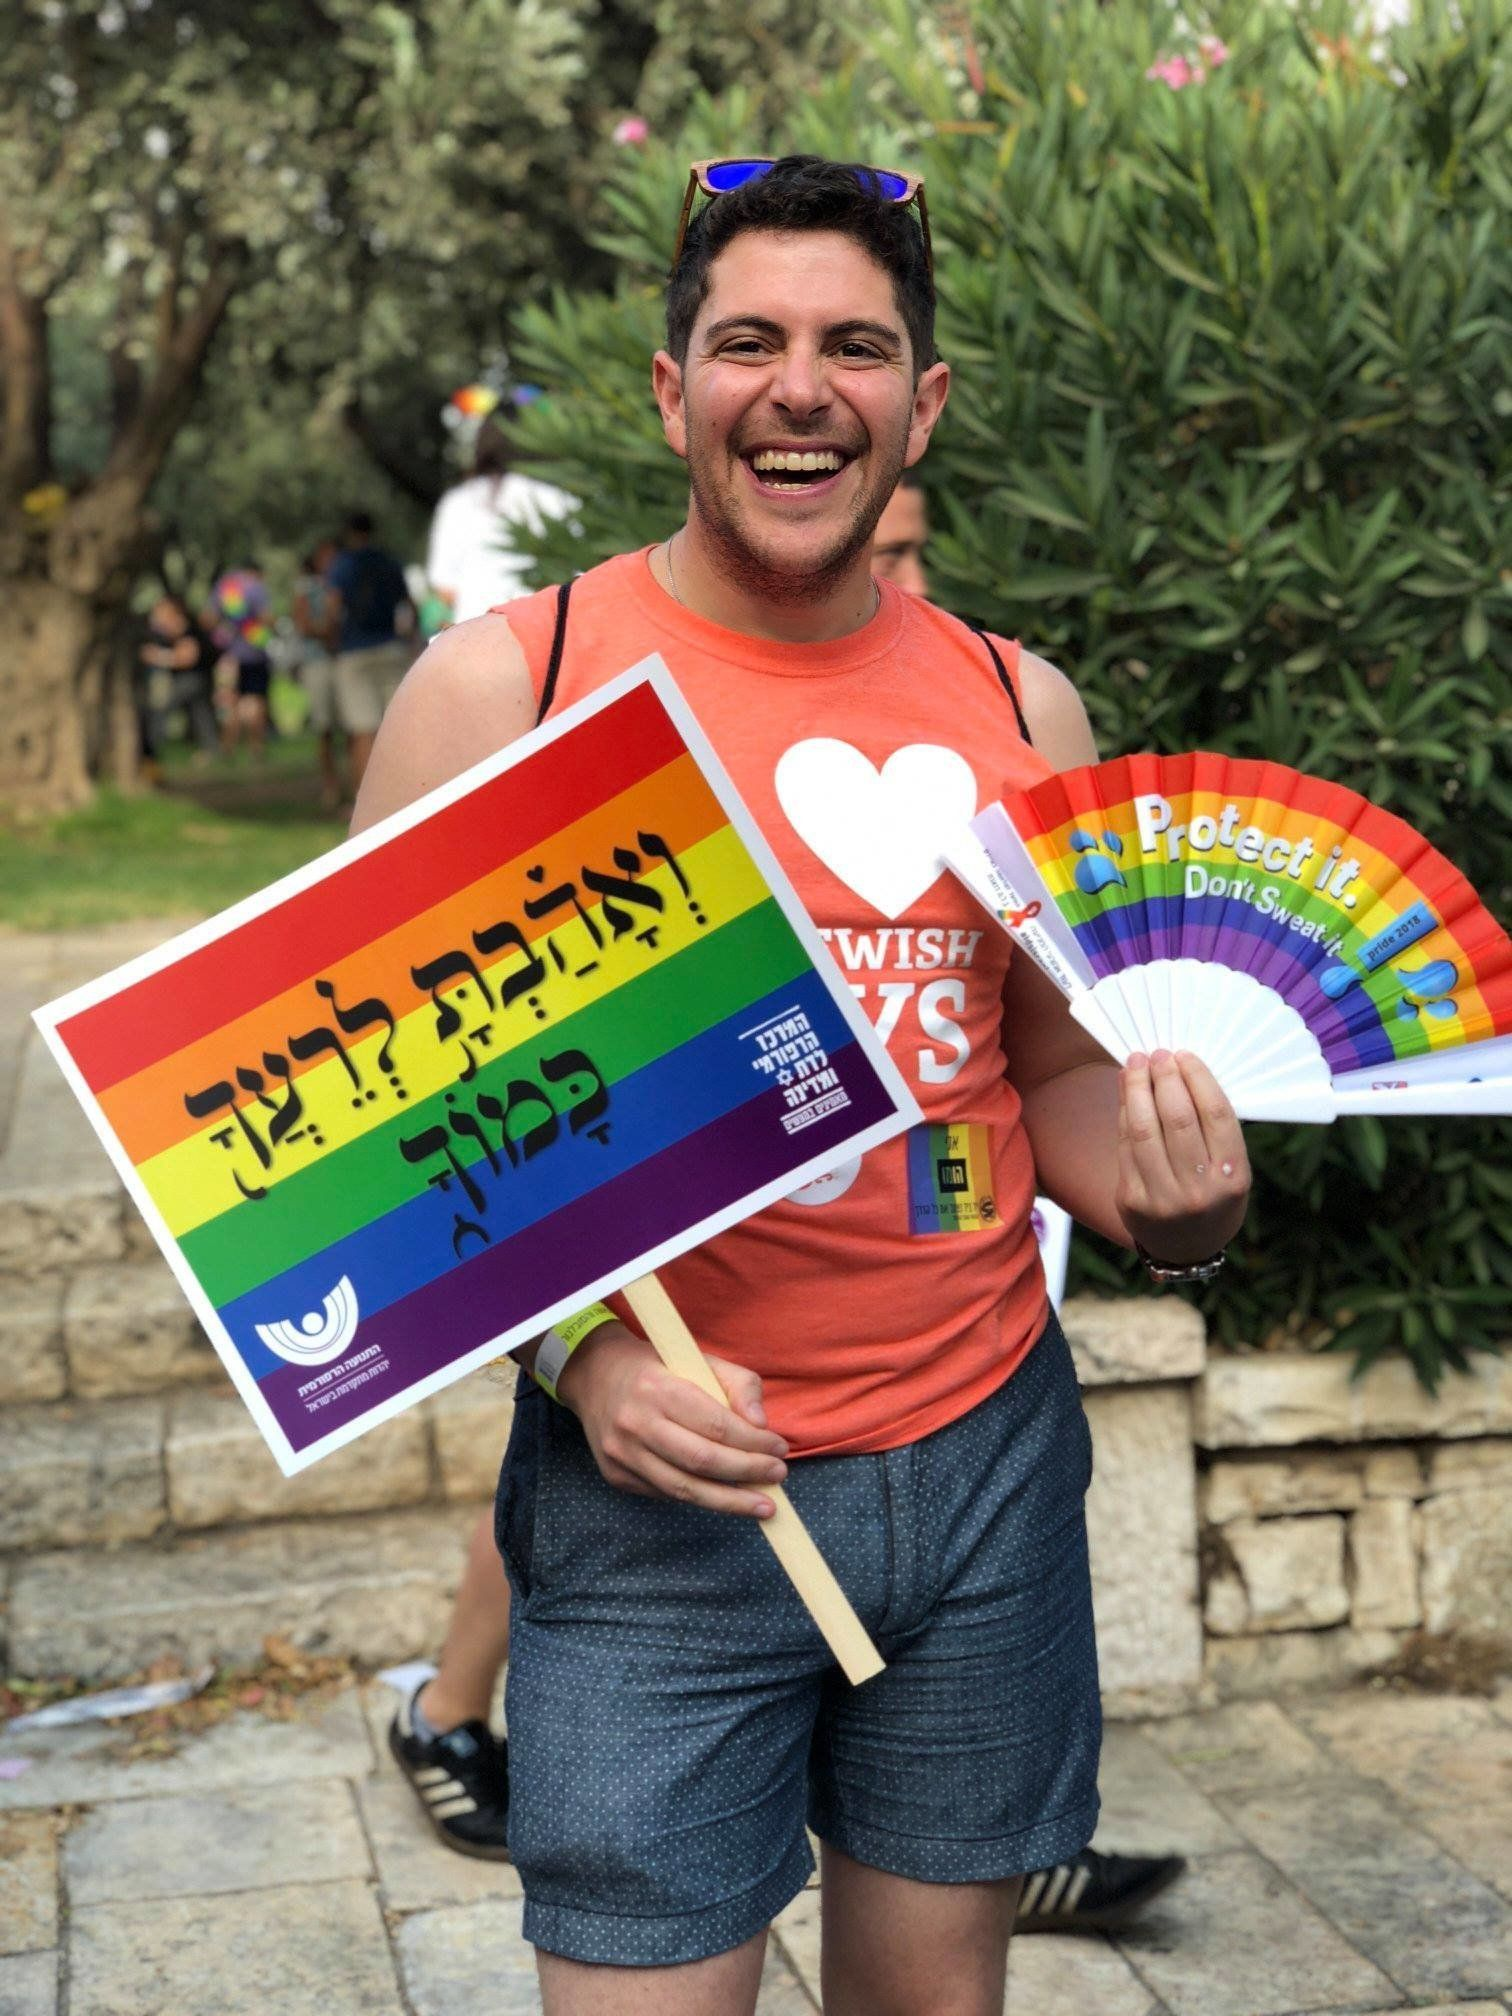 Sammy Kanter is a 32-year-old aspiring rabbi from Cincinnati currently studying in Israel.